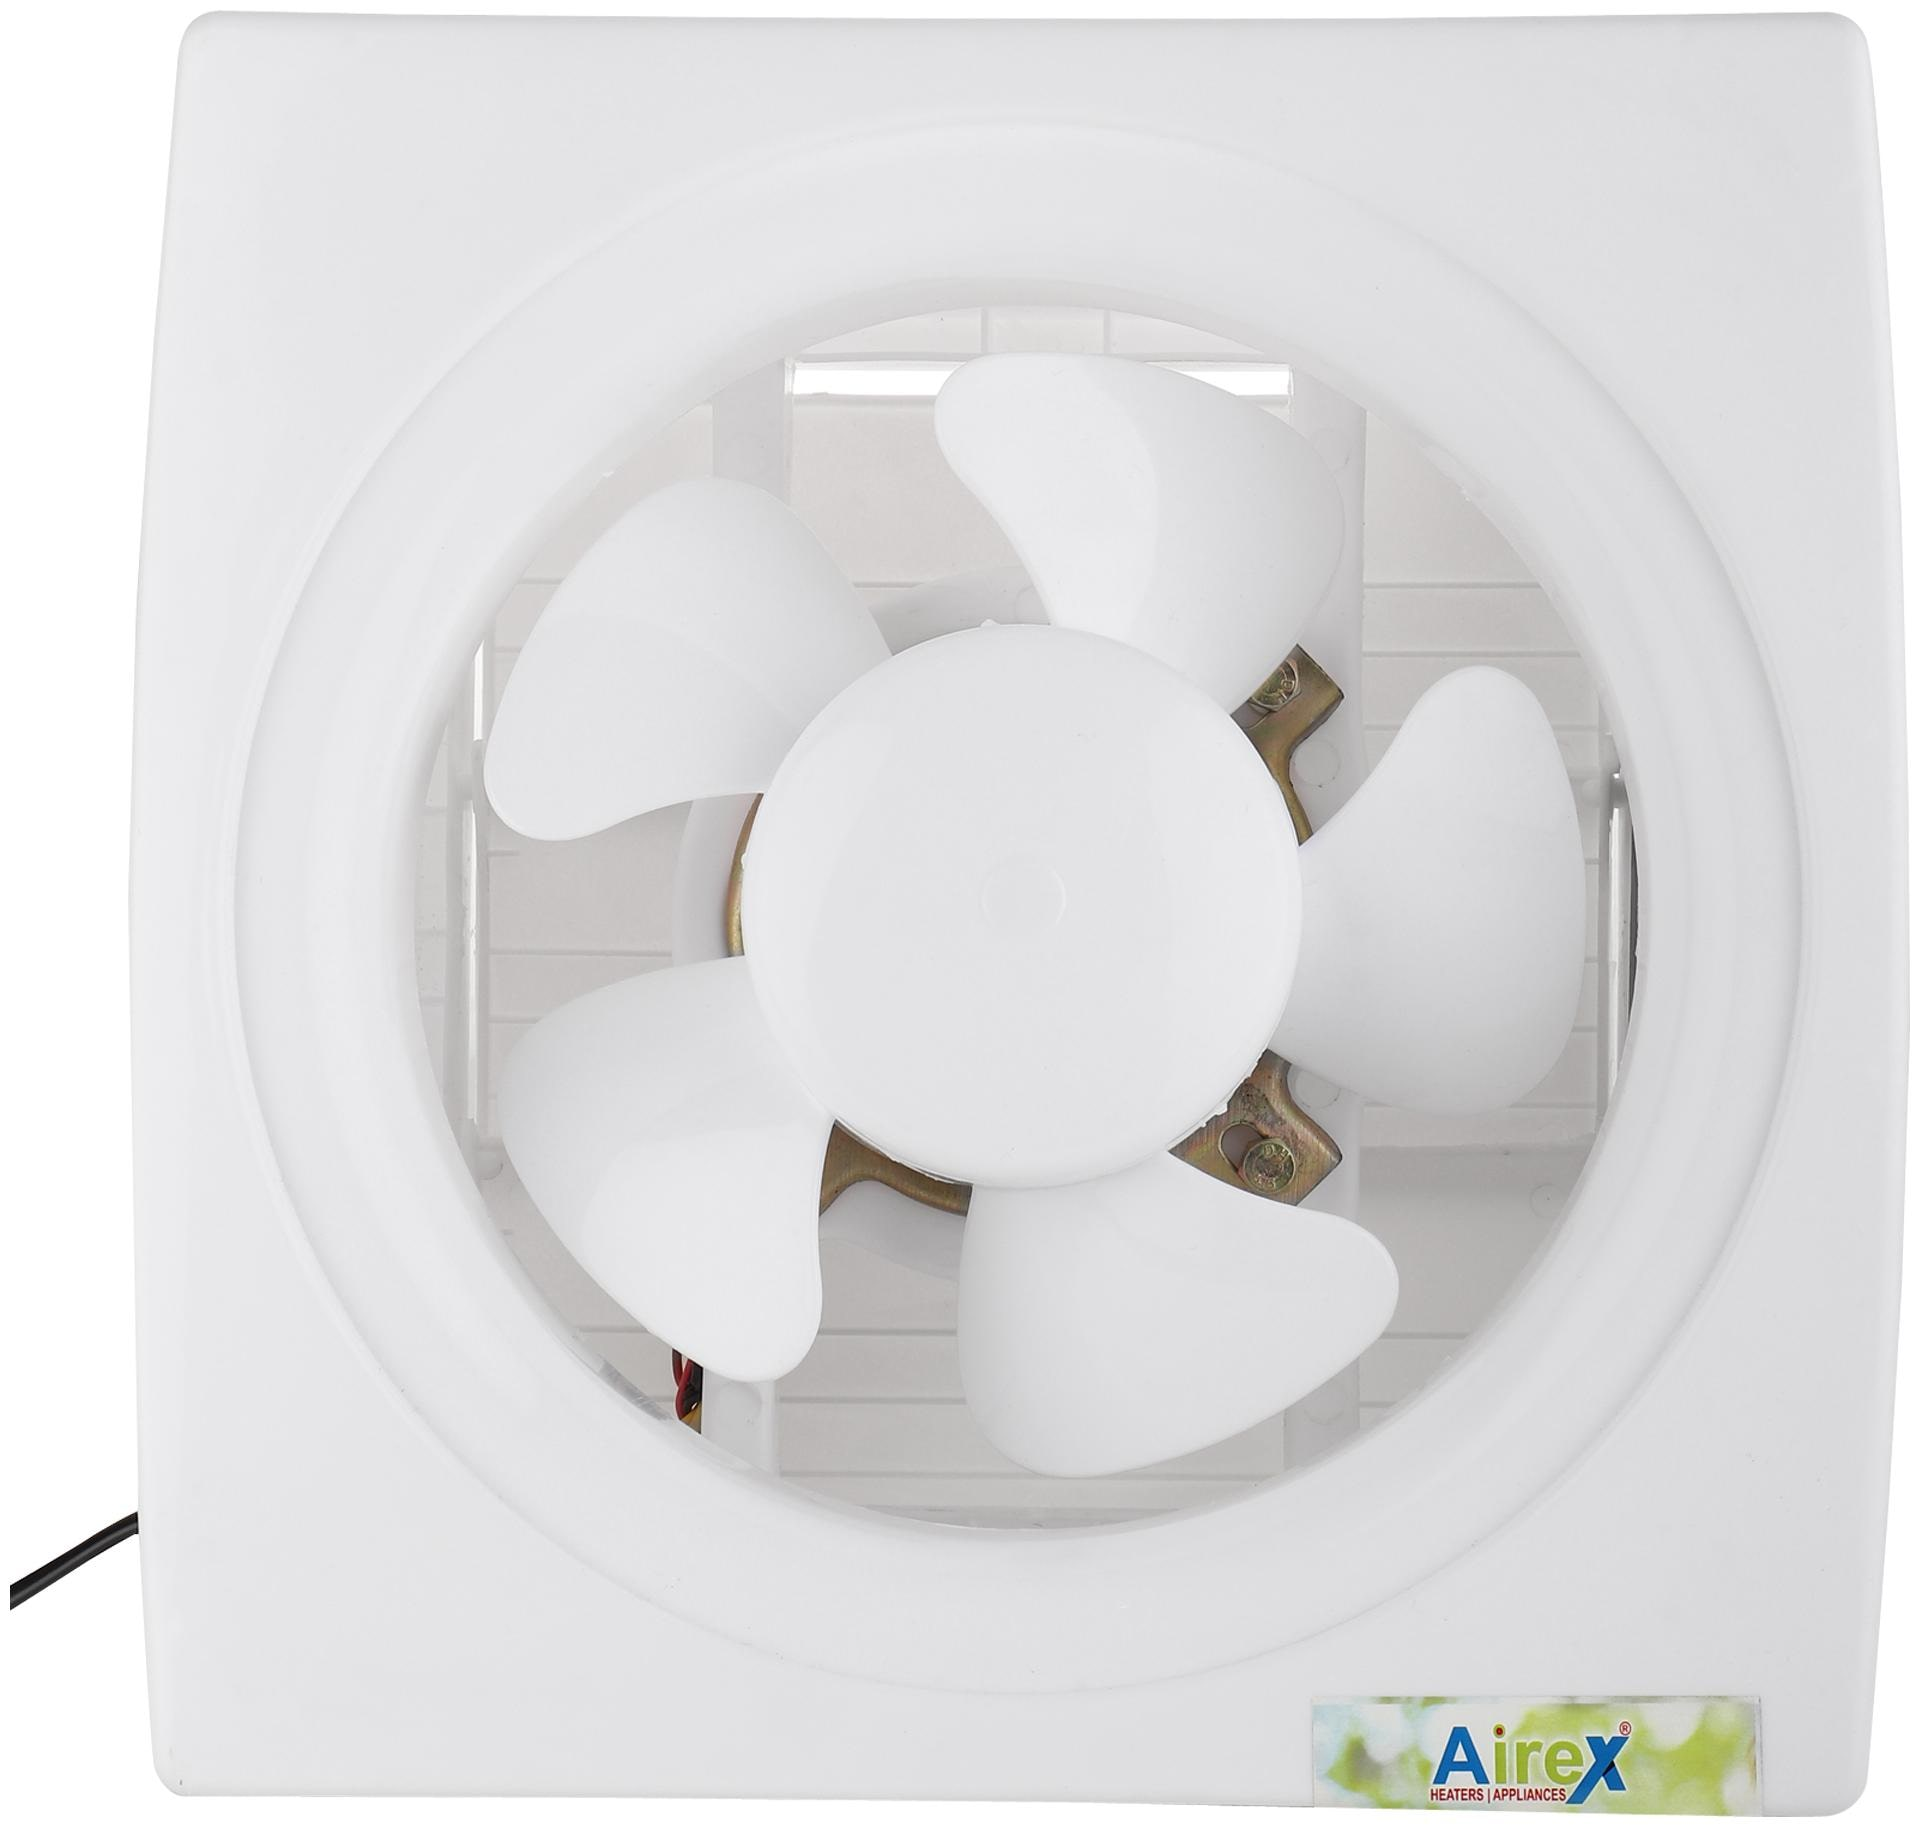 Airex AE 285 150 mm Exhaust Fan  White